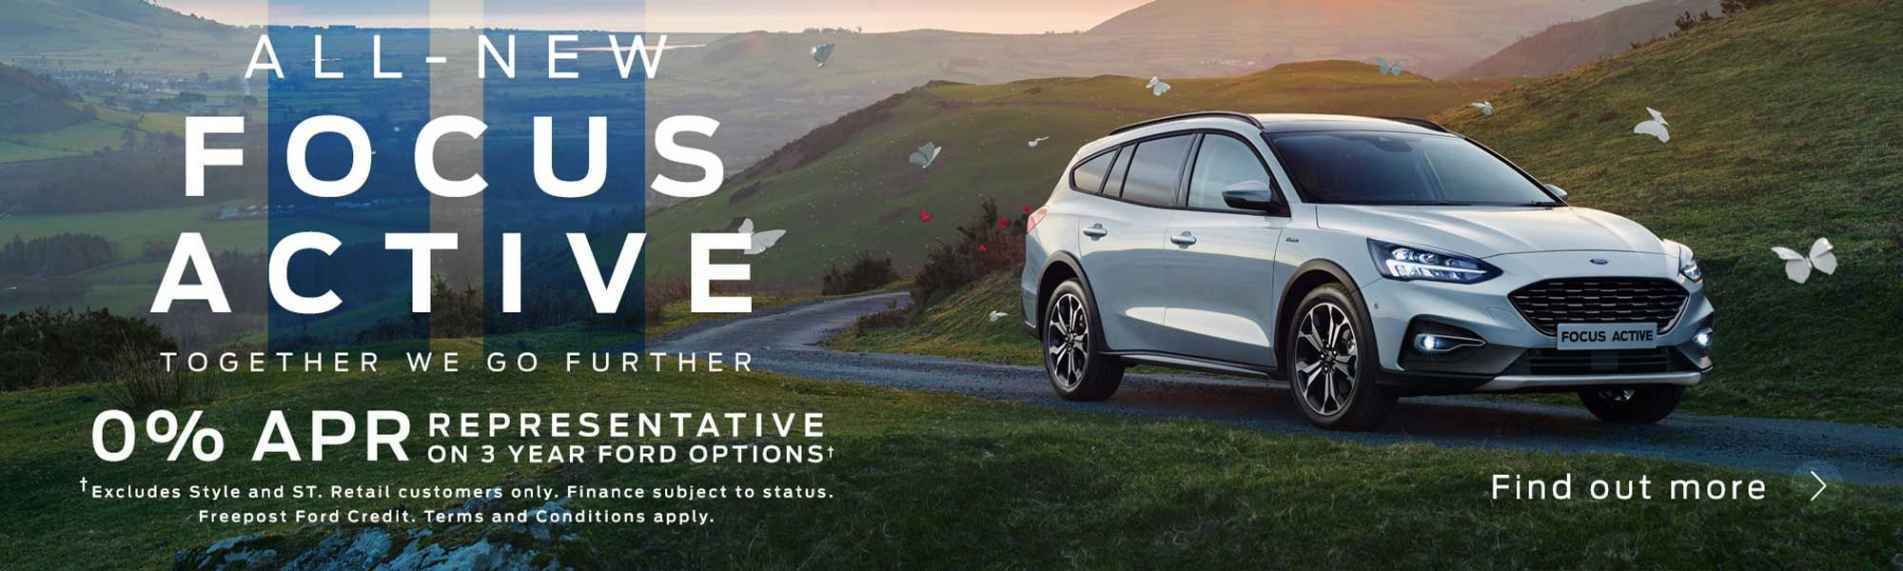 Ford Focus Active Banner